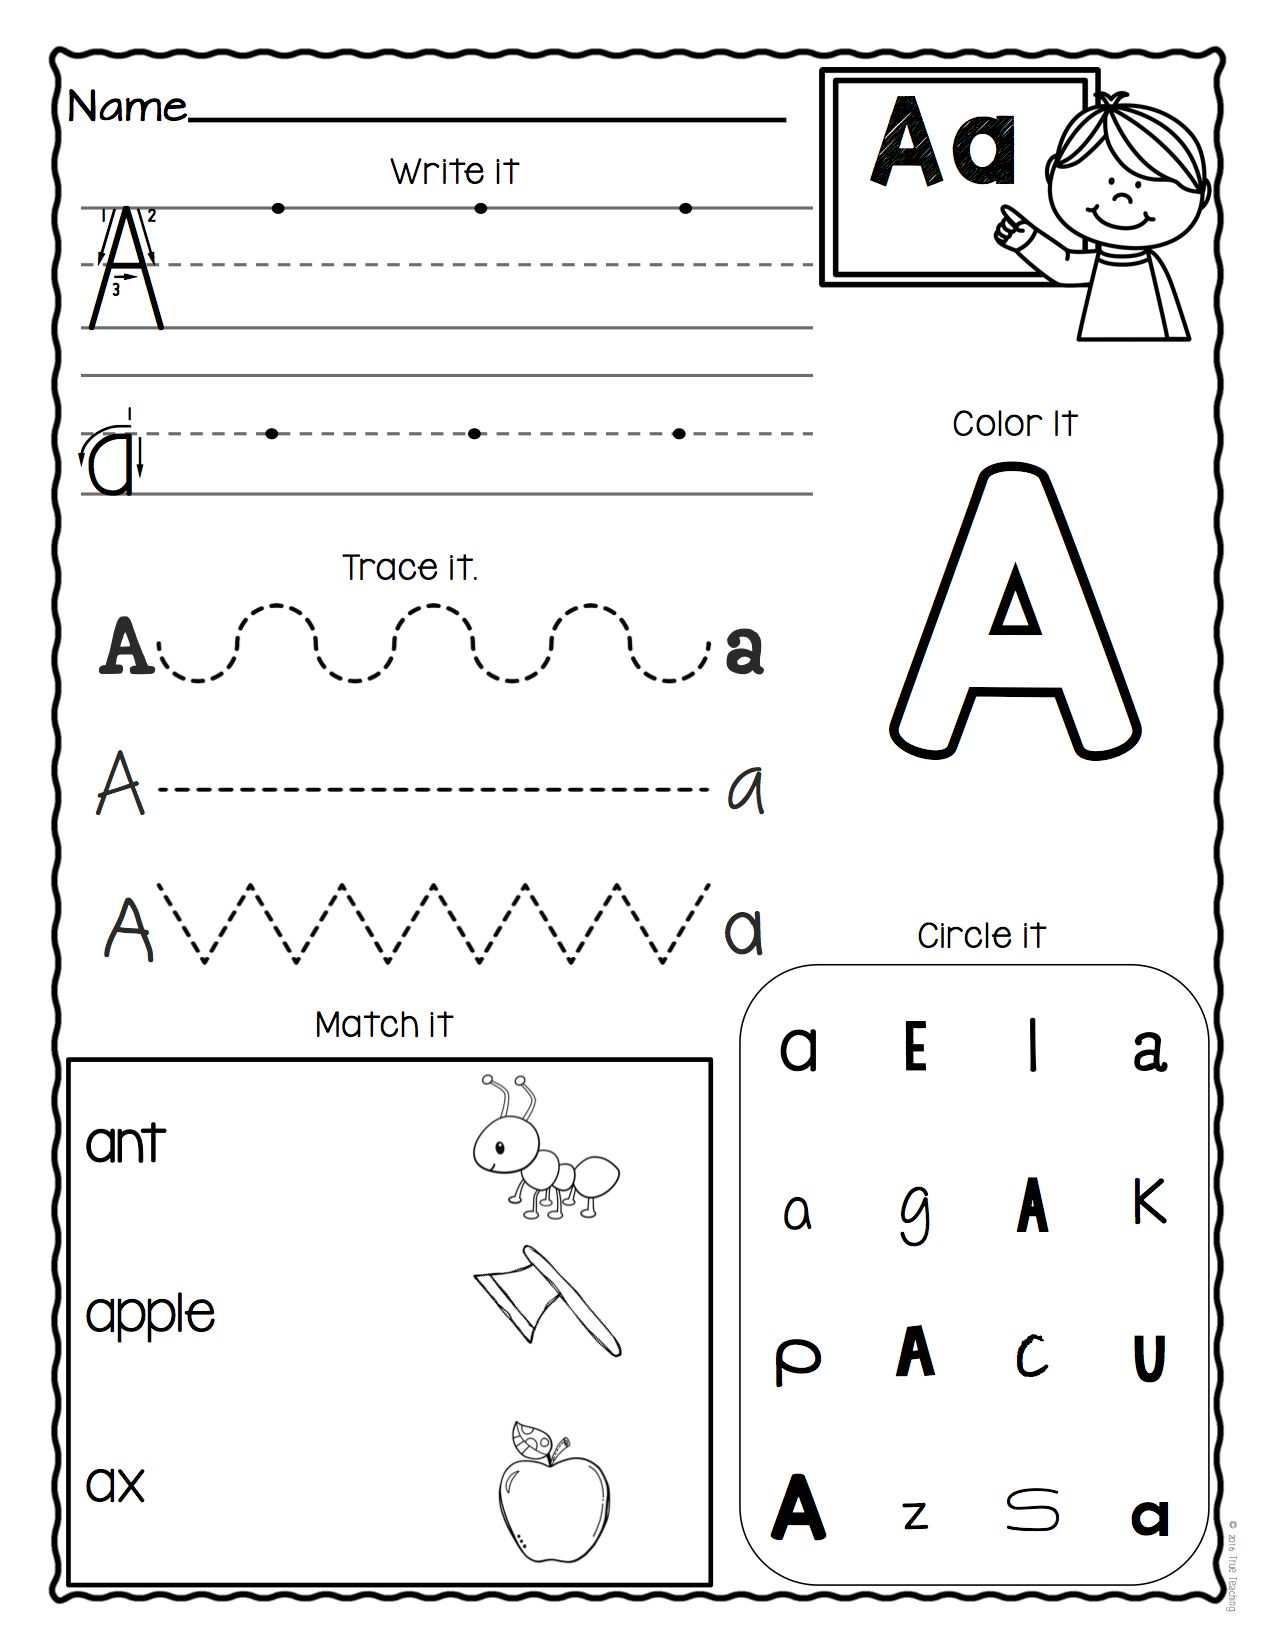 a z letter worksheets set 3 educational finds teaching treasures letter worksheets. Black Bedroom Furniture Sets. Home Design Ideas